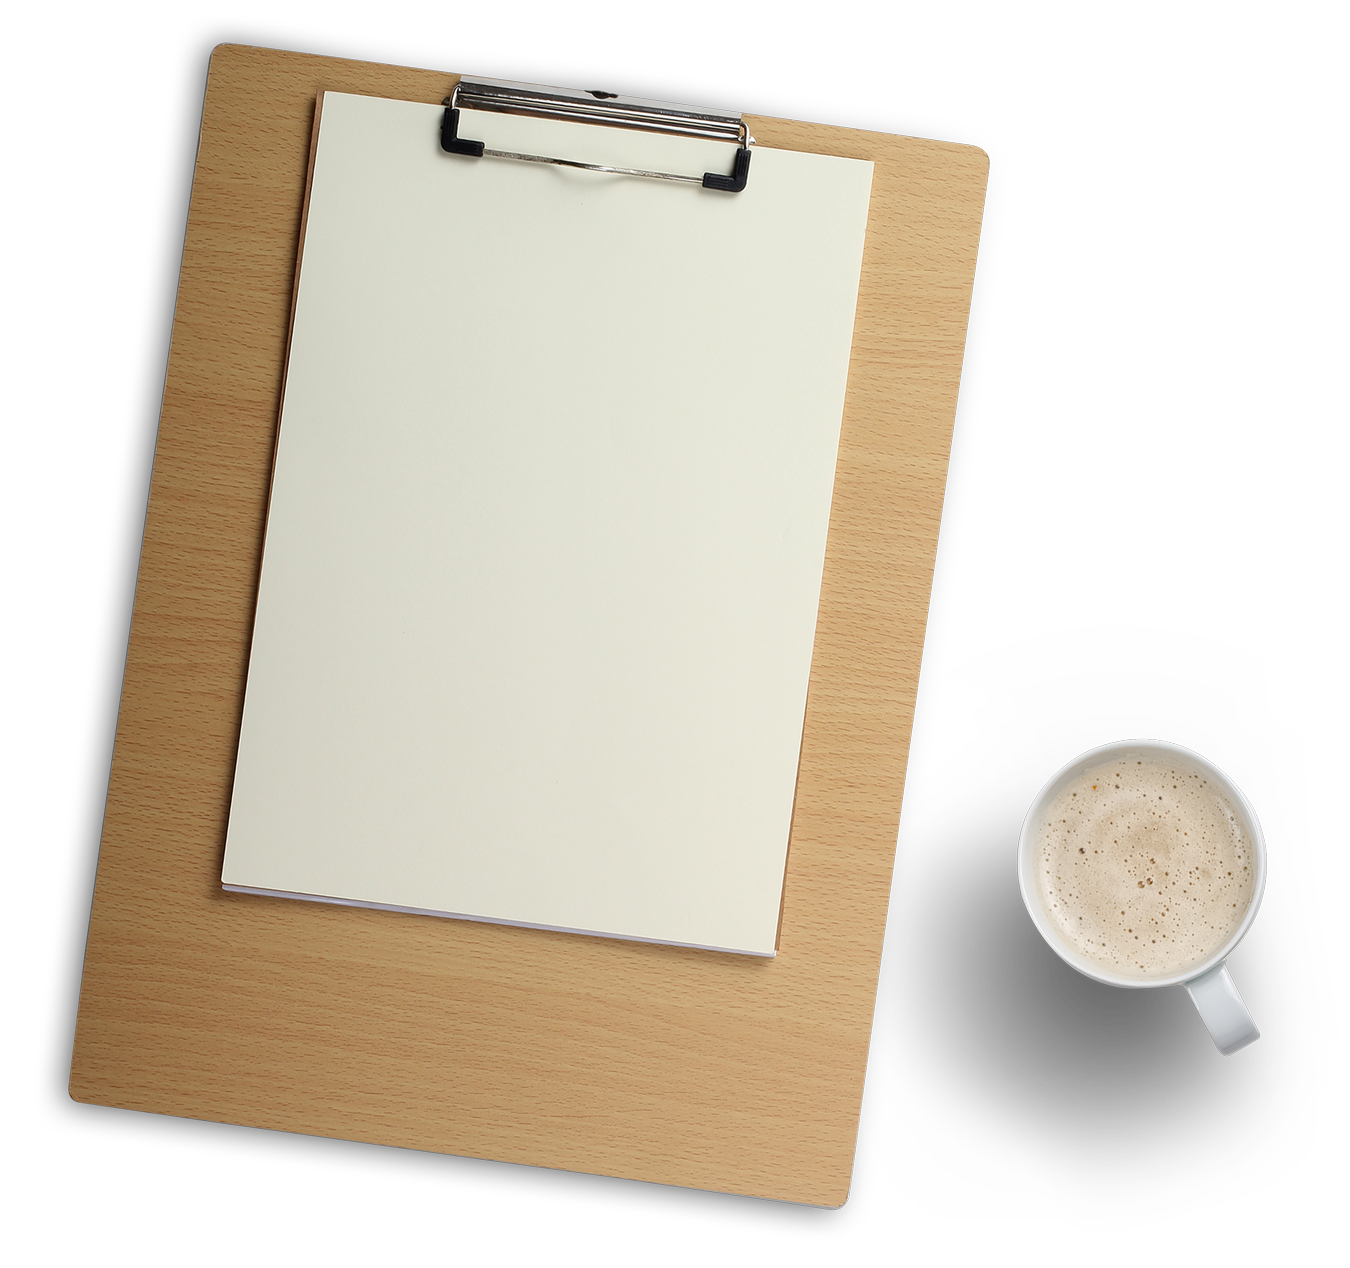 Png image clipboard. Wood and coffee cup